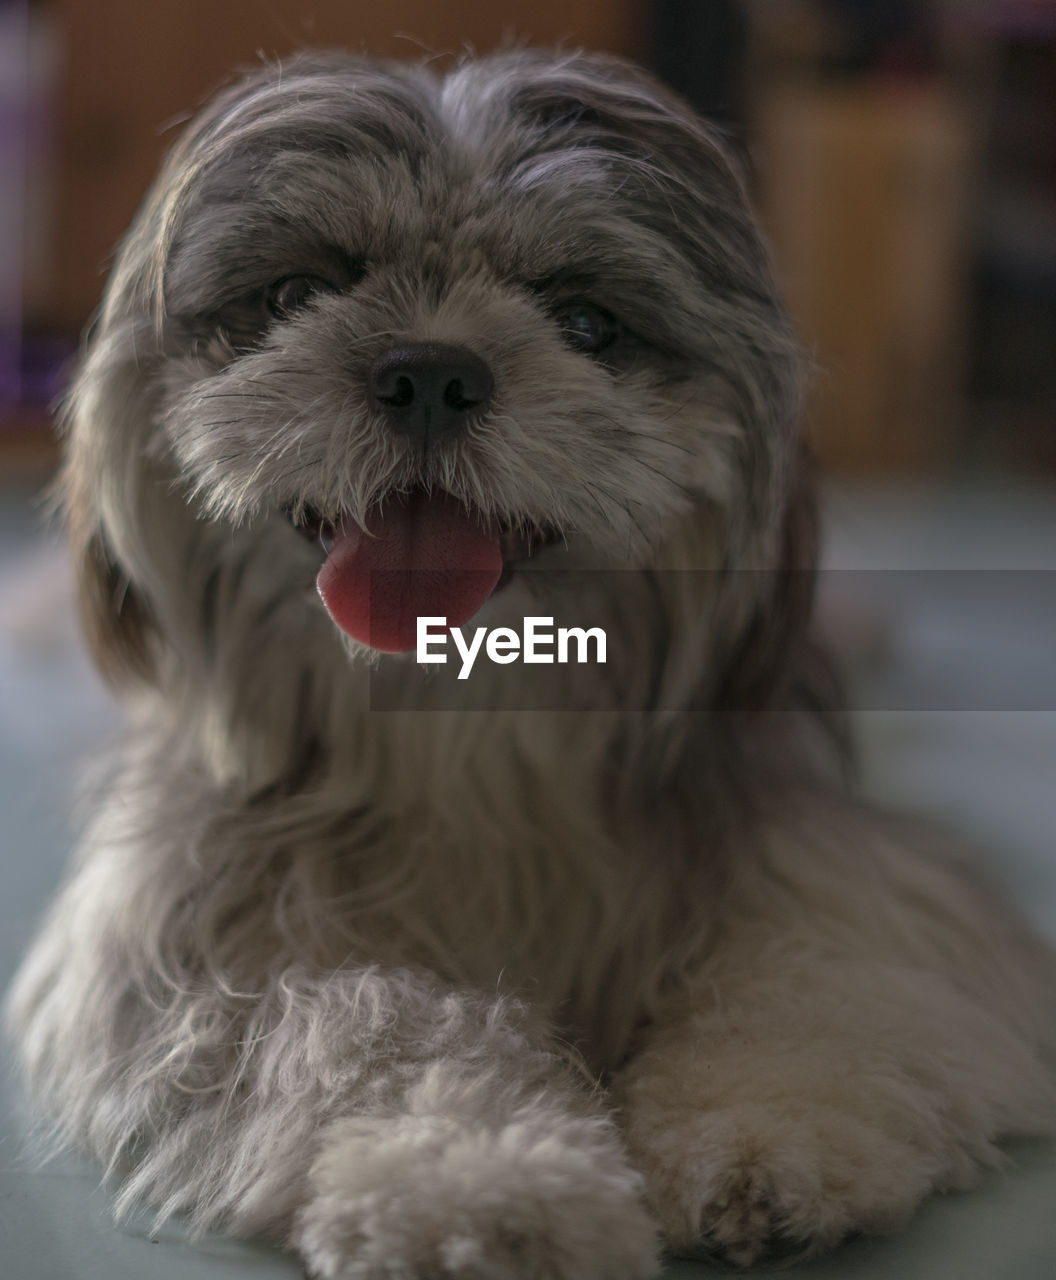 domestic, pets, one animal, dog, canine, domestic animals, animal, mammal, animal themes, vertebrate, focus on foreground, close-up, indoors, no people, animal hair, portrait, facial expression, animal body part, hair, home interior, animal tongue, animal head, mouth open, shih tzu, animal mouth